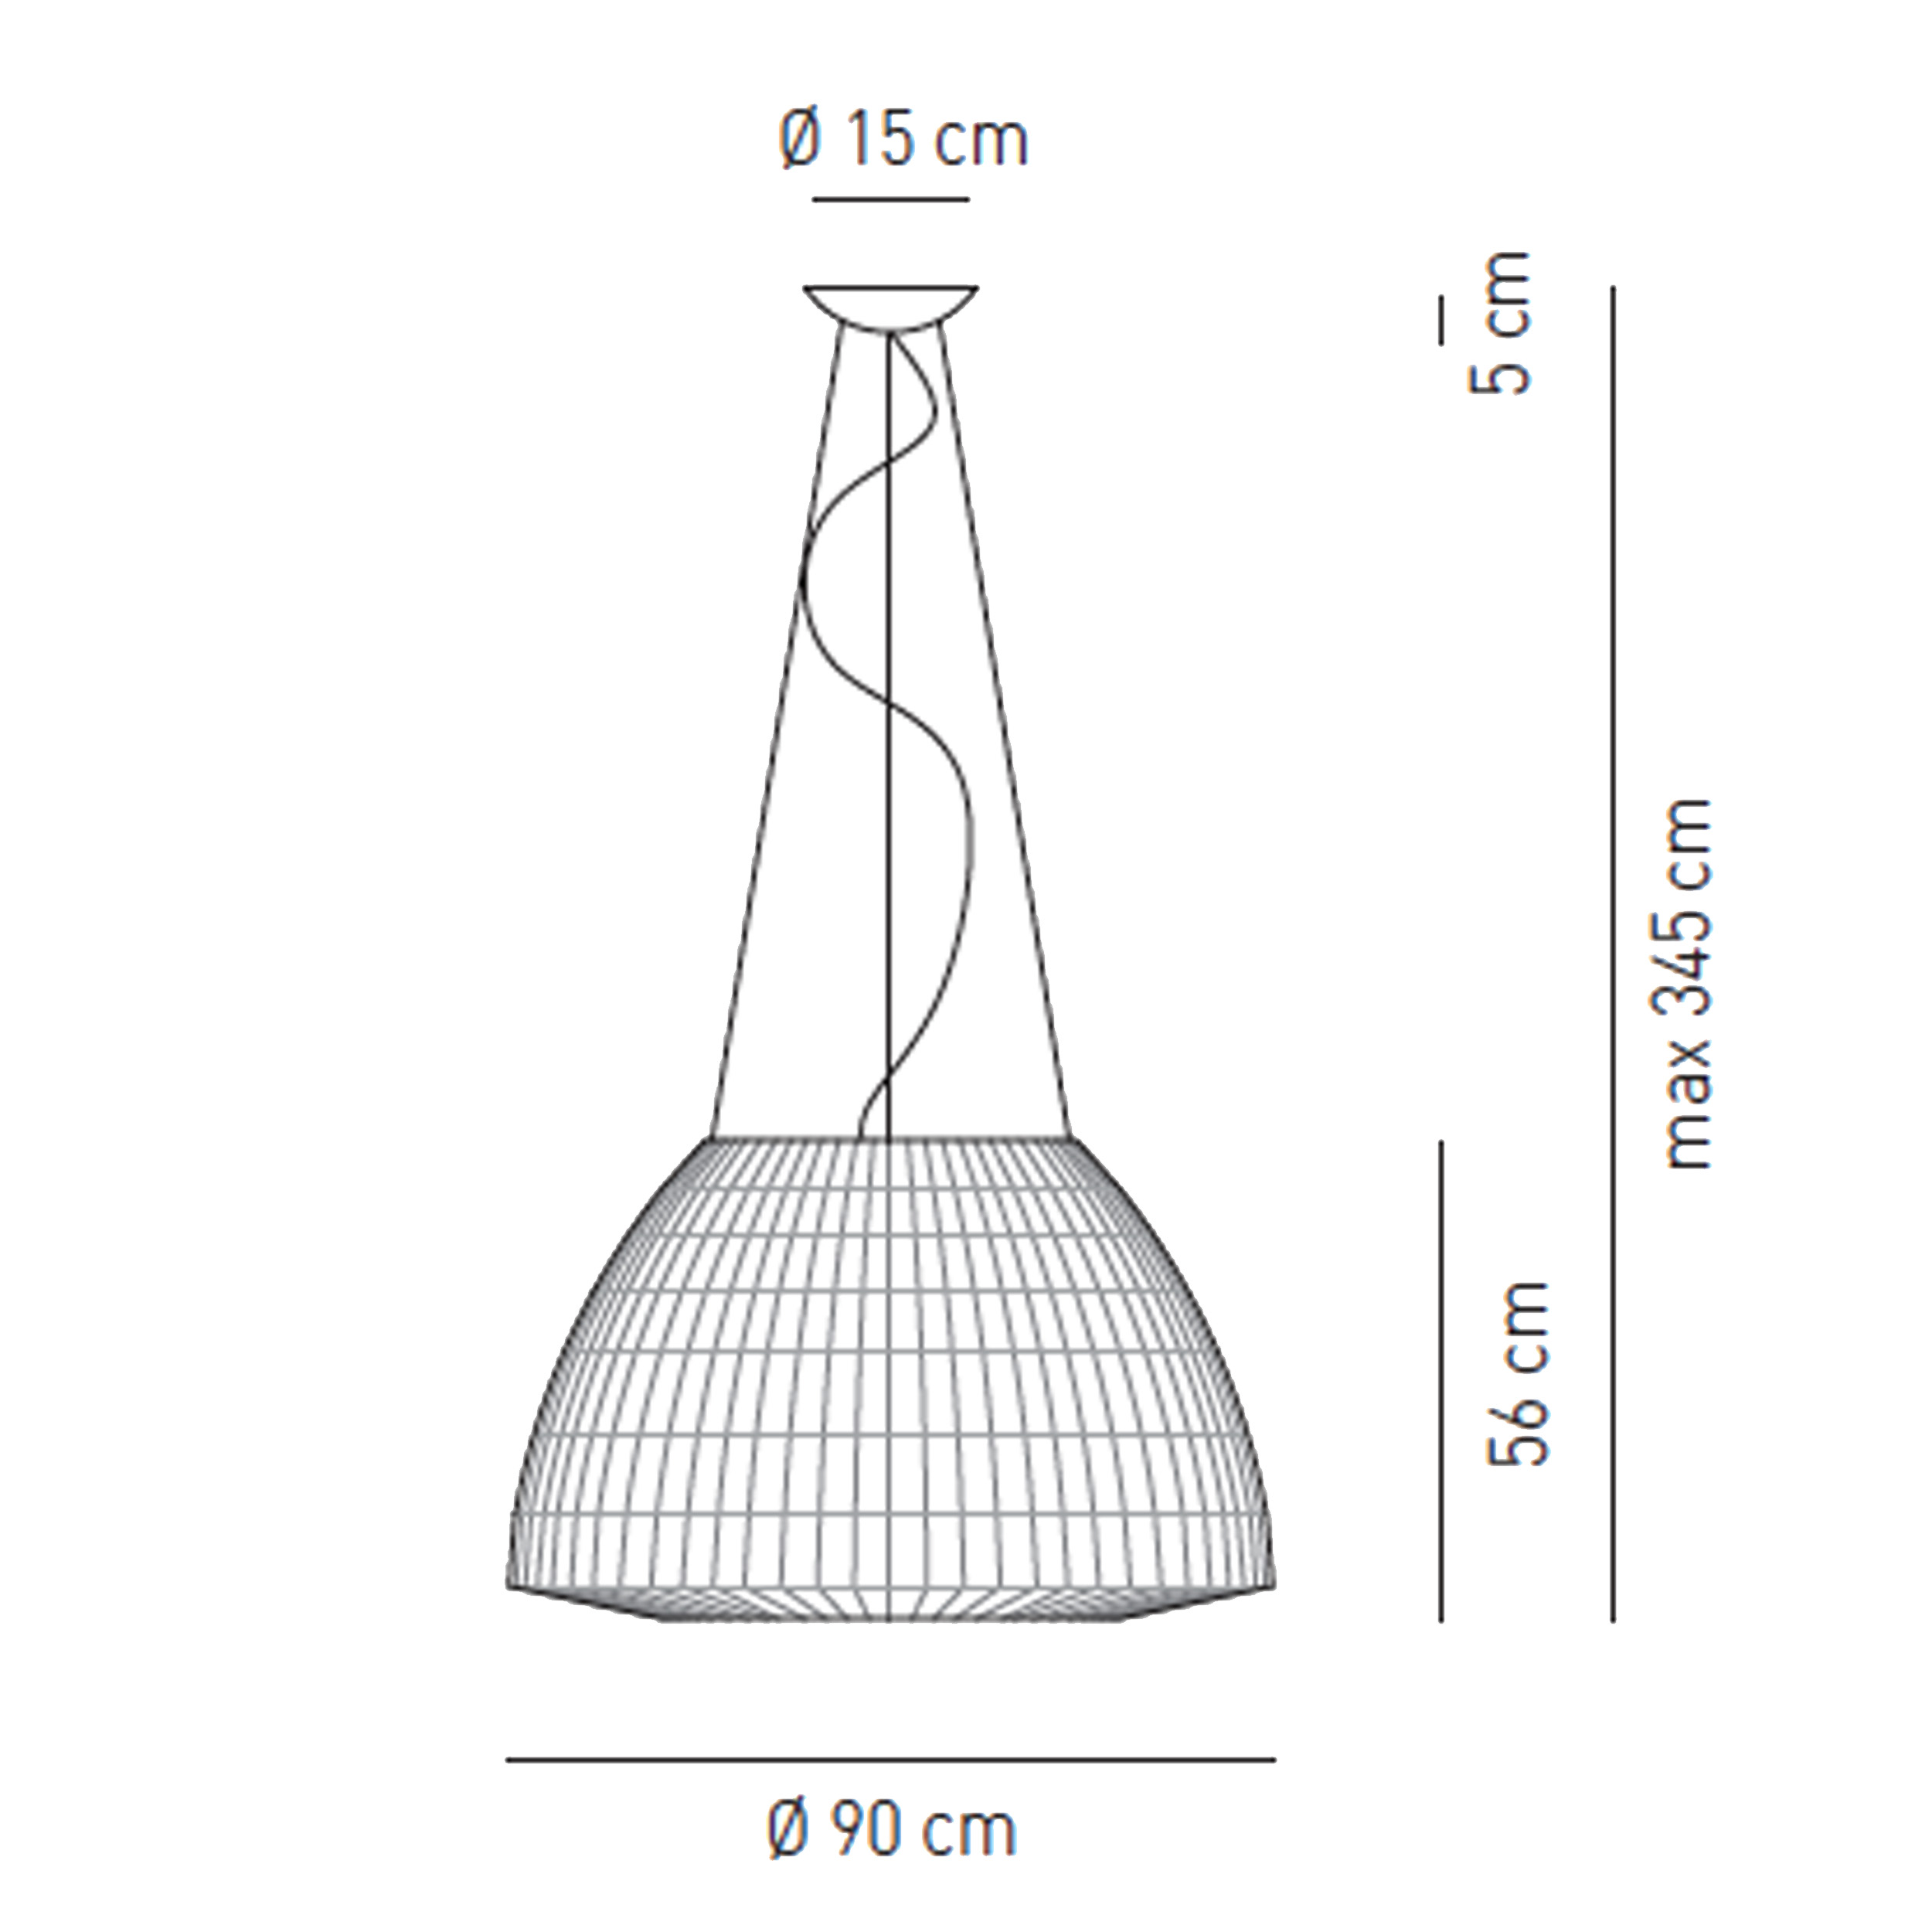 Axolight Bell 90 Led Pendant Light Line Drawing